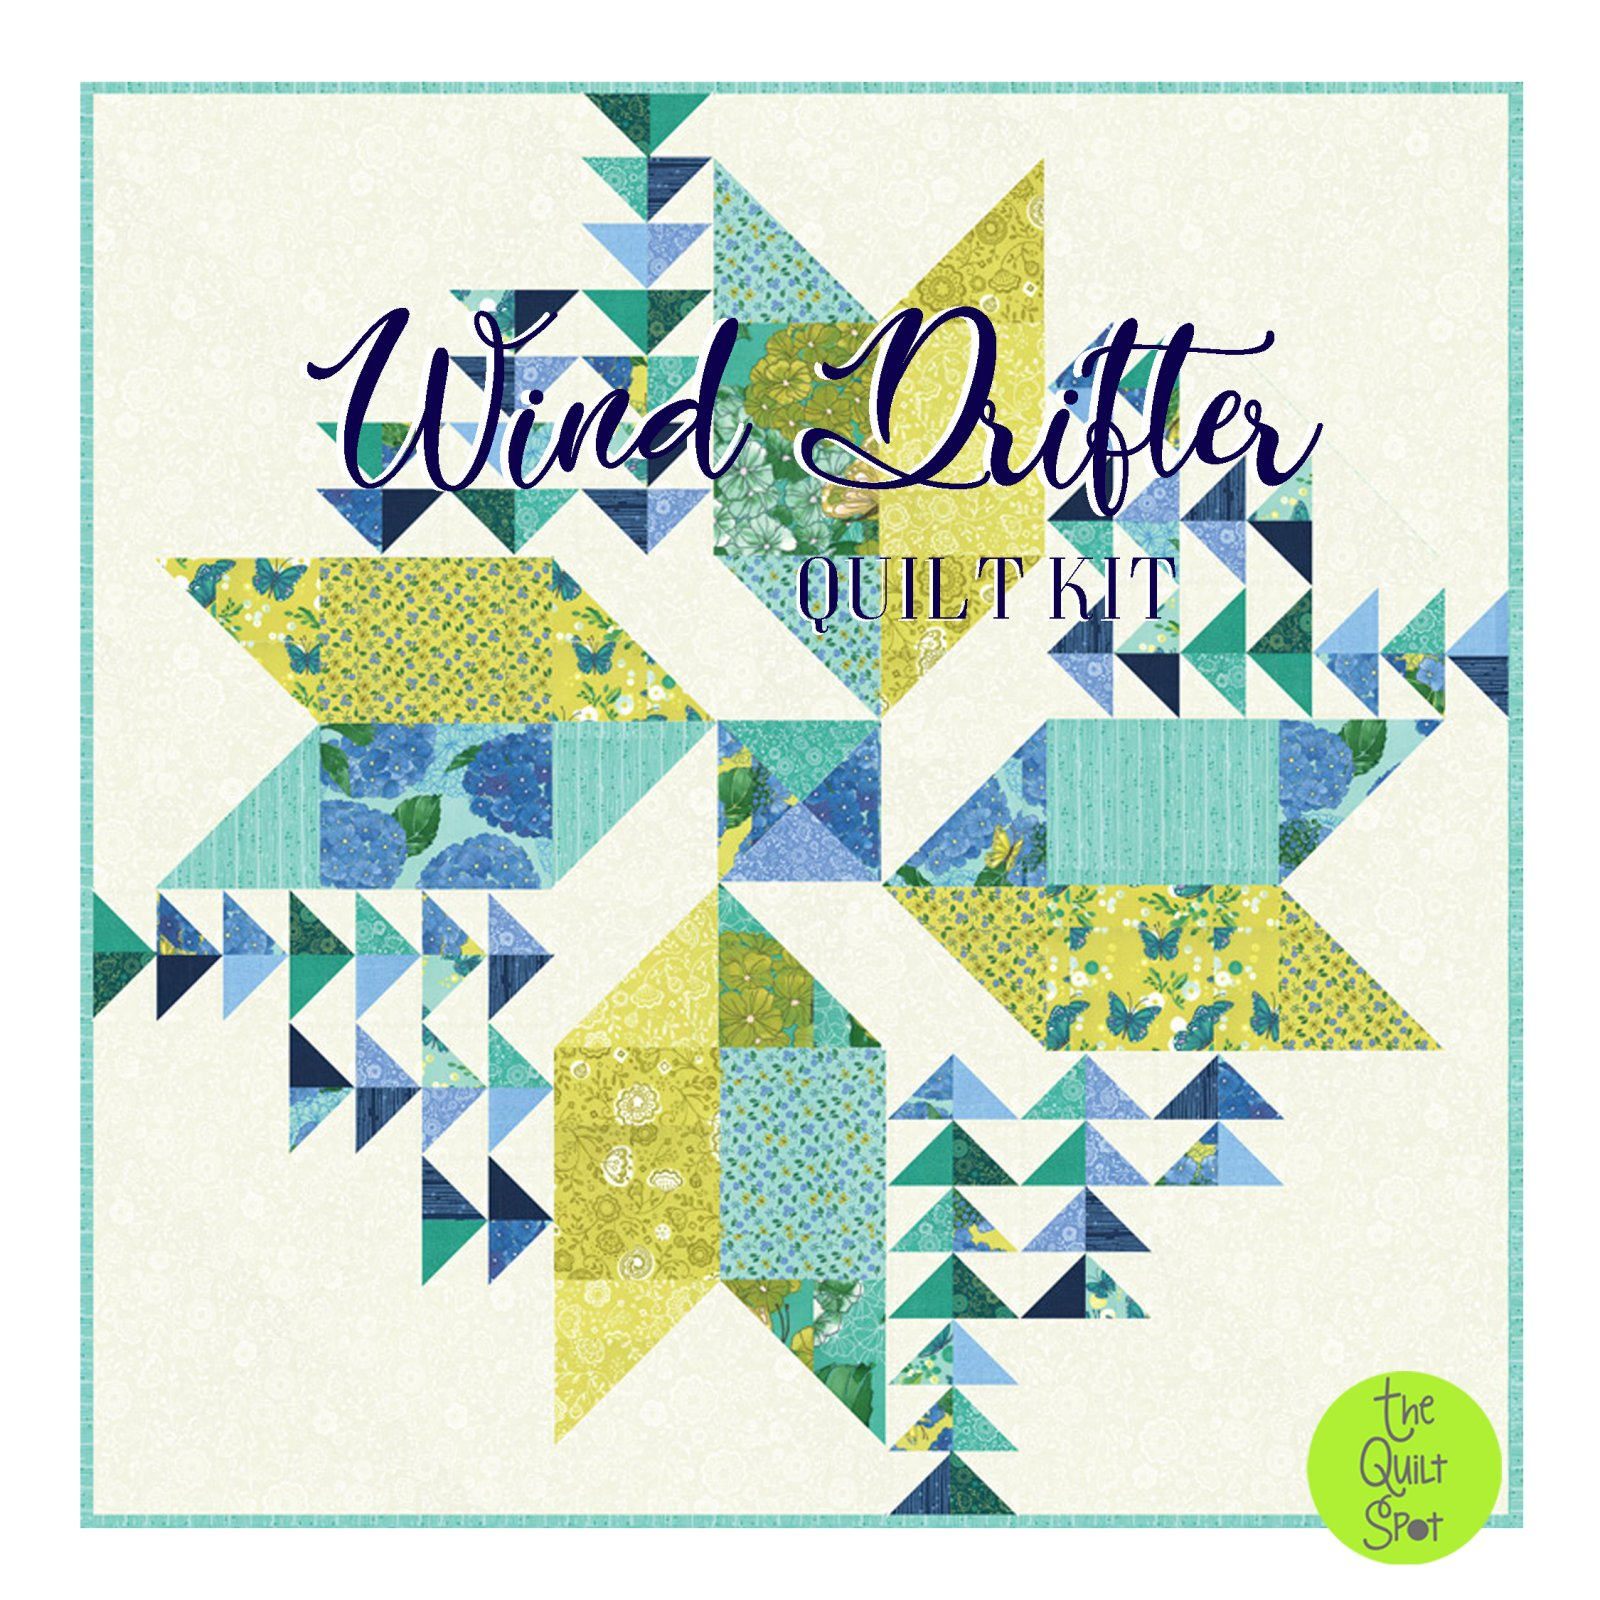 Wind Drifter Quilt Kit featuring Cottage Bleu by Robin Pickens